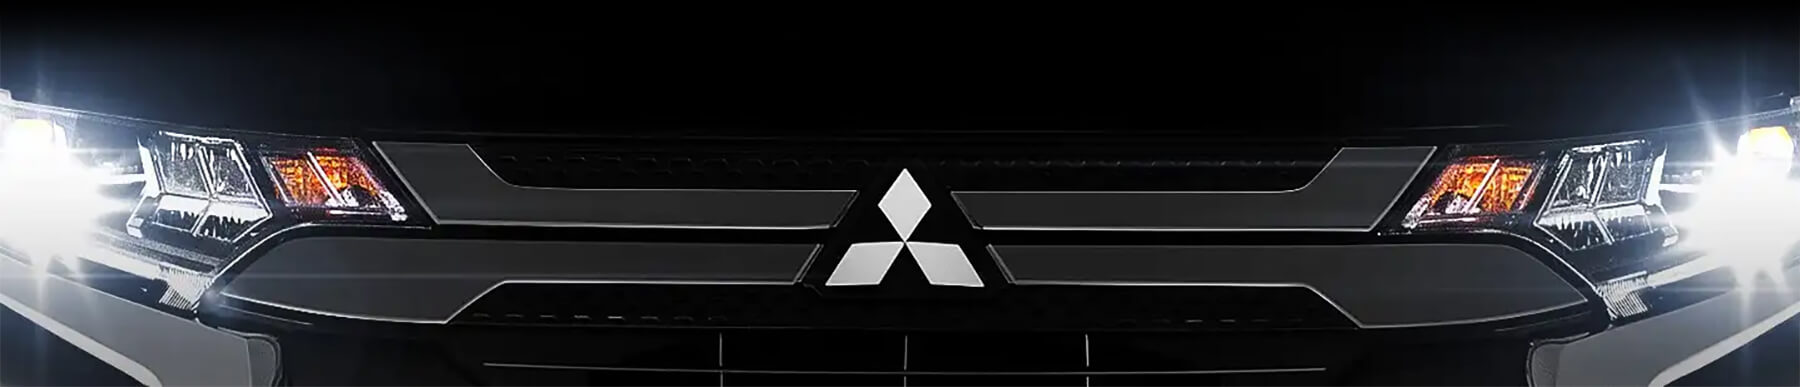 What Does Mitsubishi Mean?